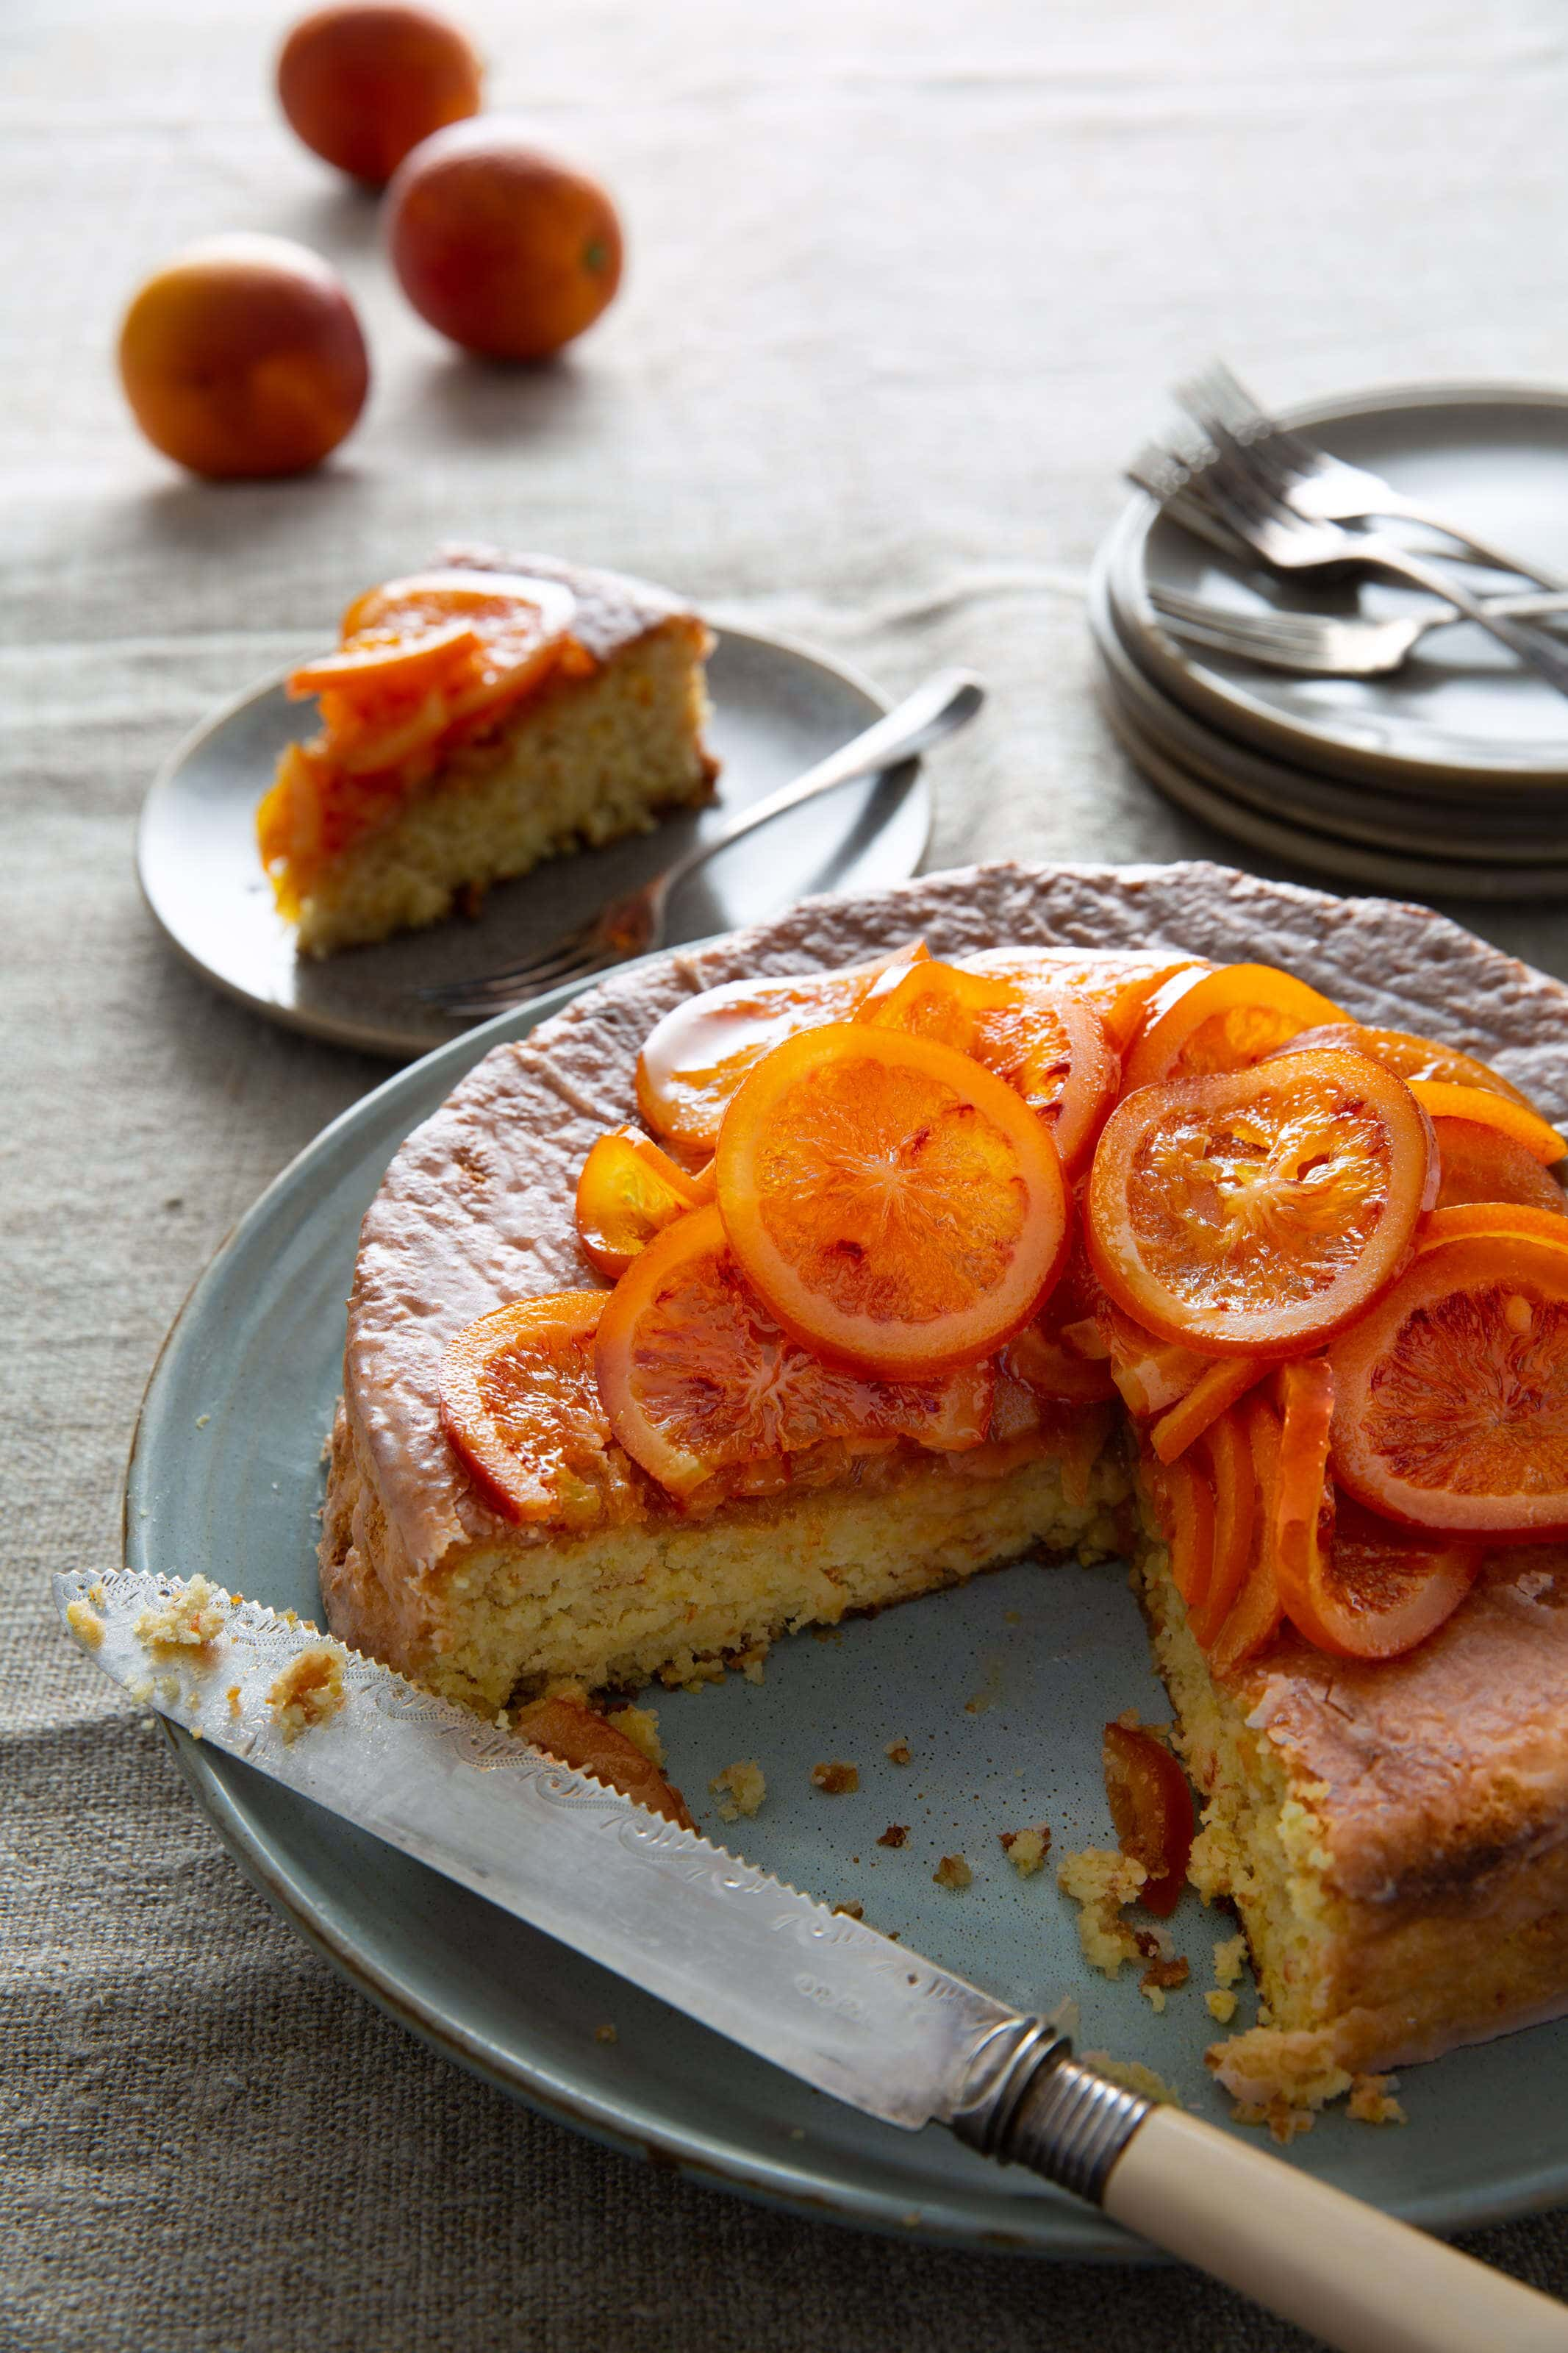 almond and blood orange cake with candies blood oranges on top.